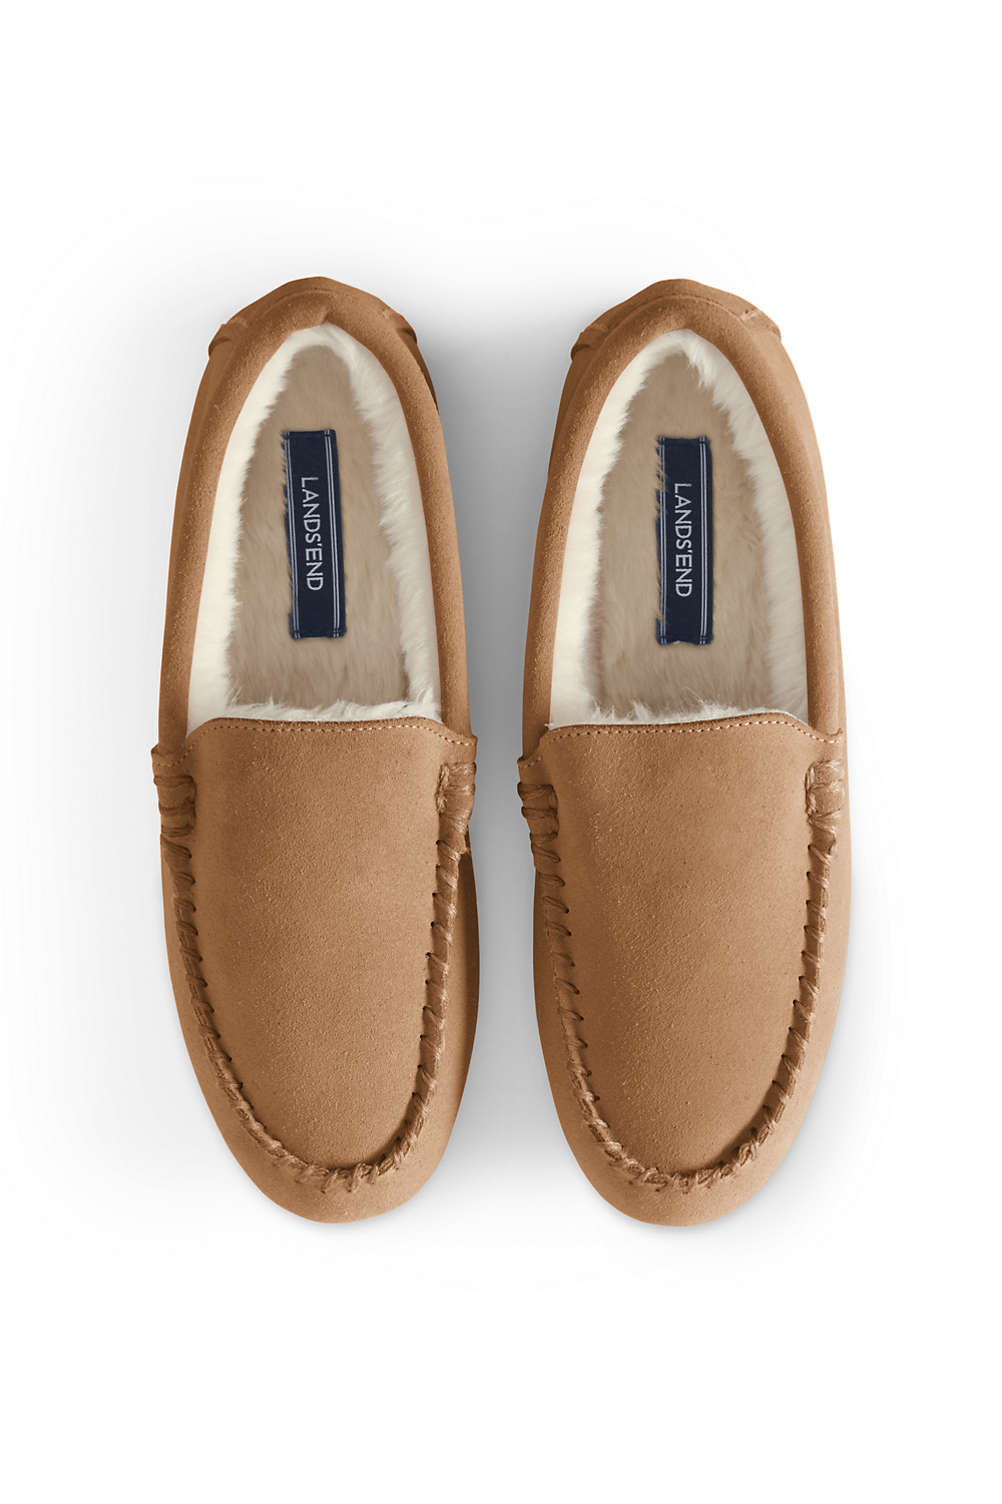 9b3d0724d601 Women s Suede Moccasin Slippers from Lands  End